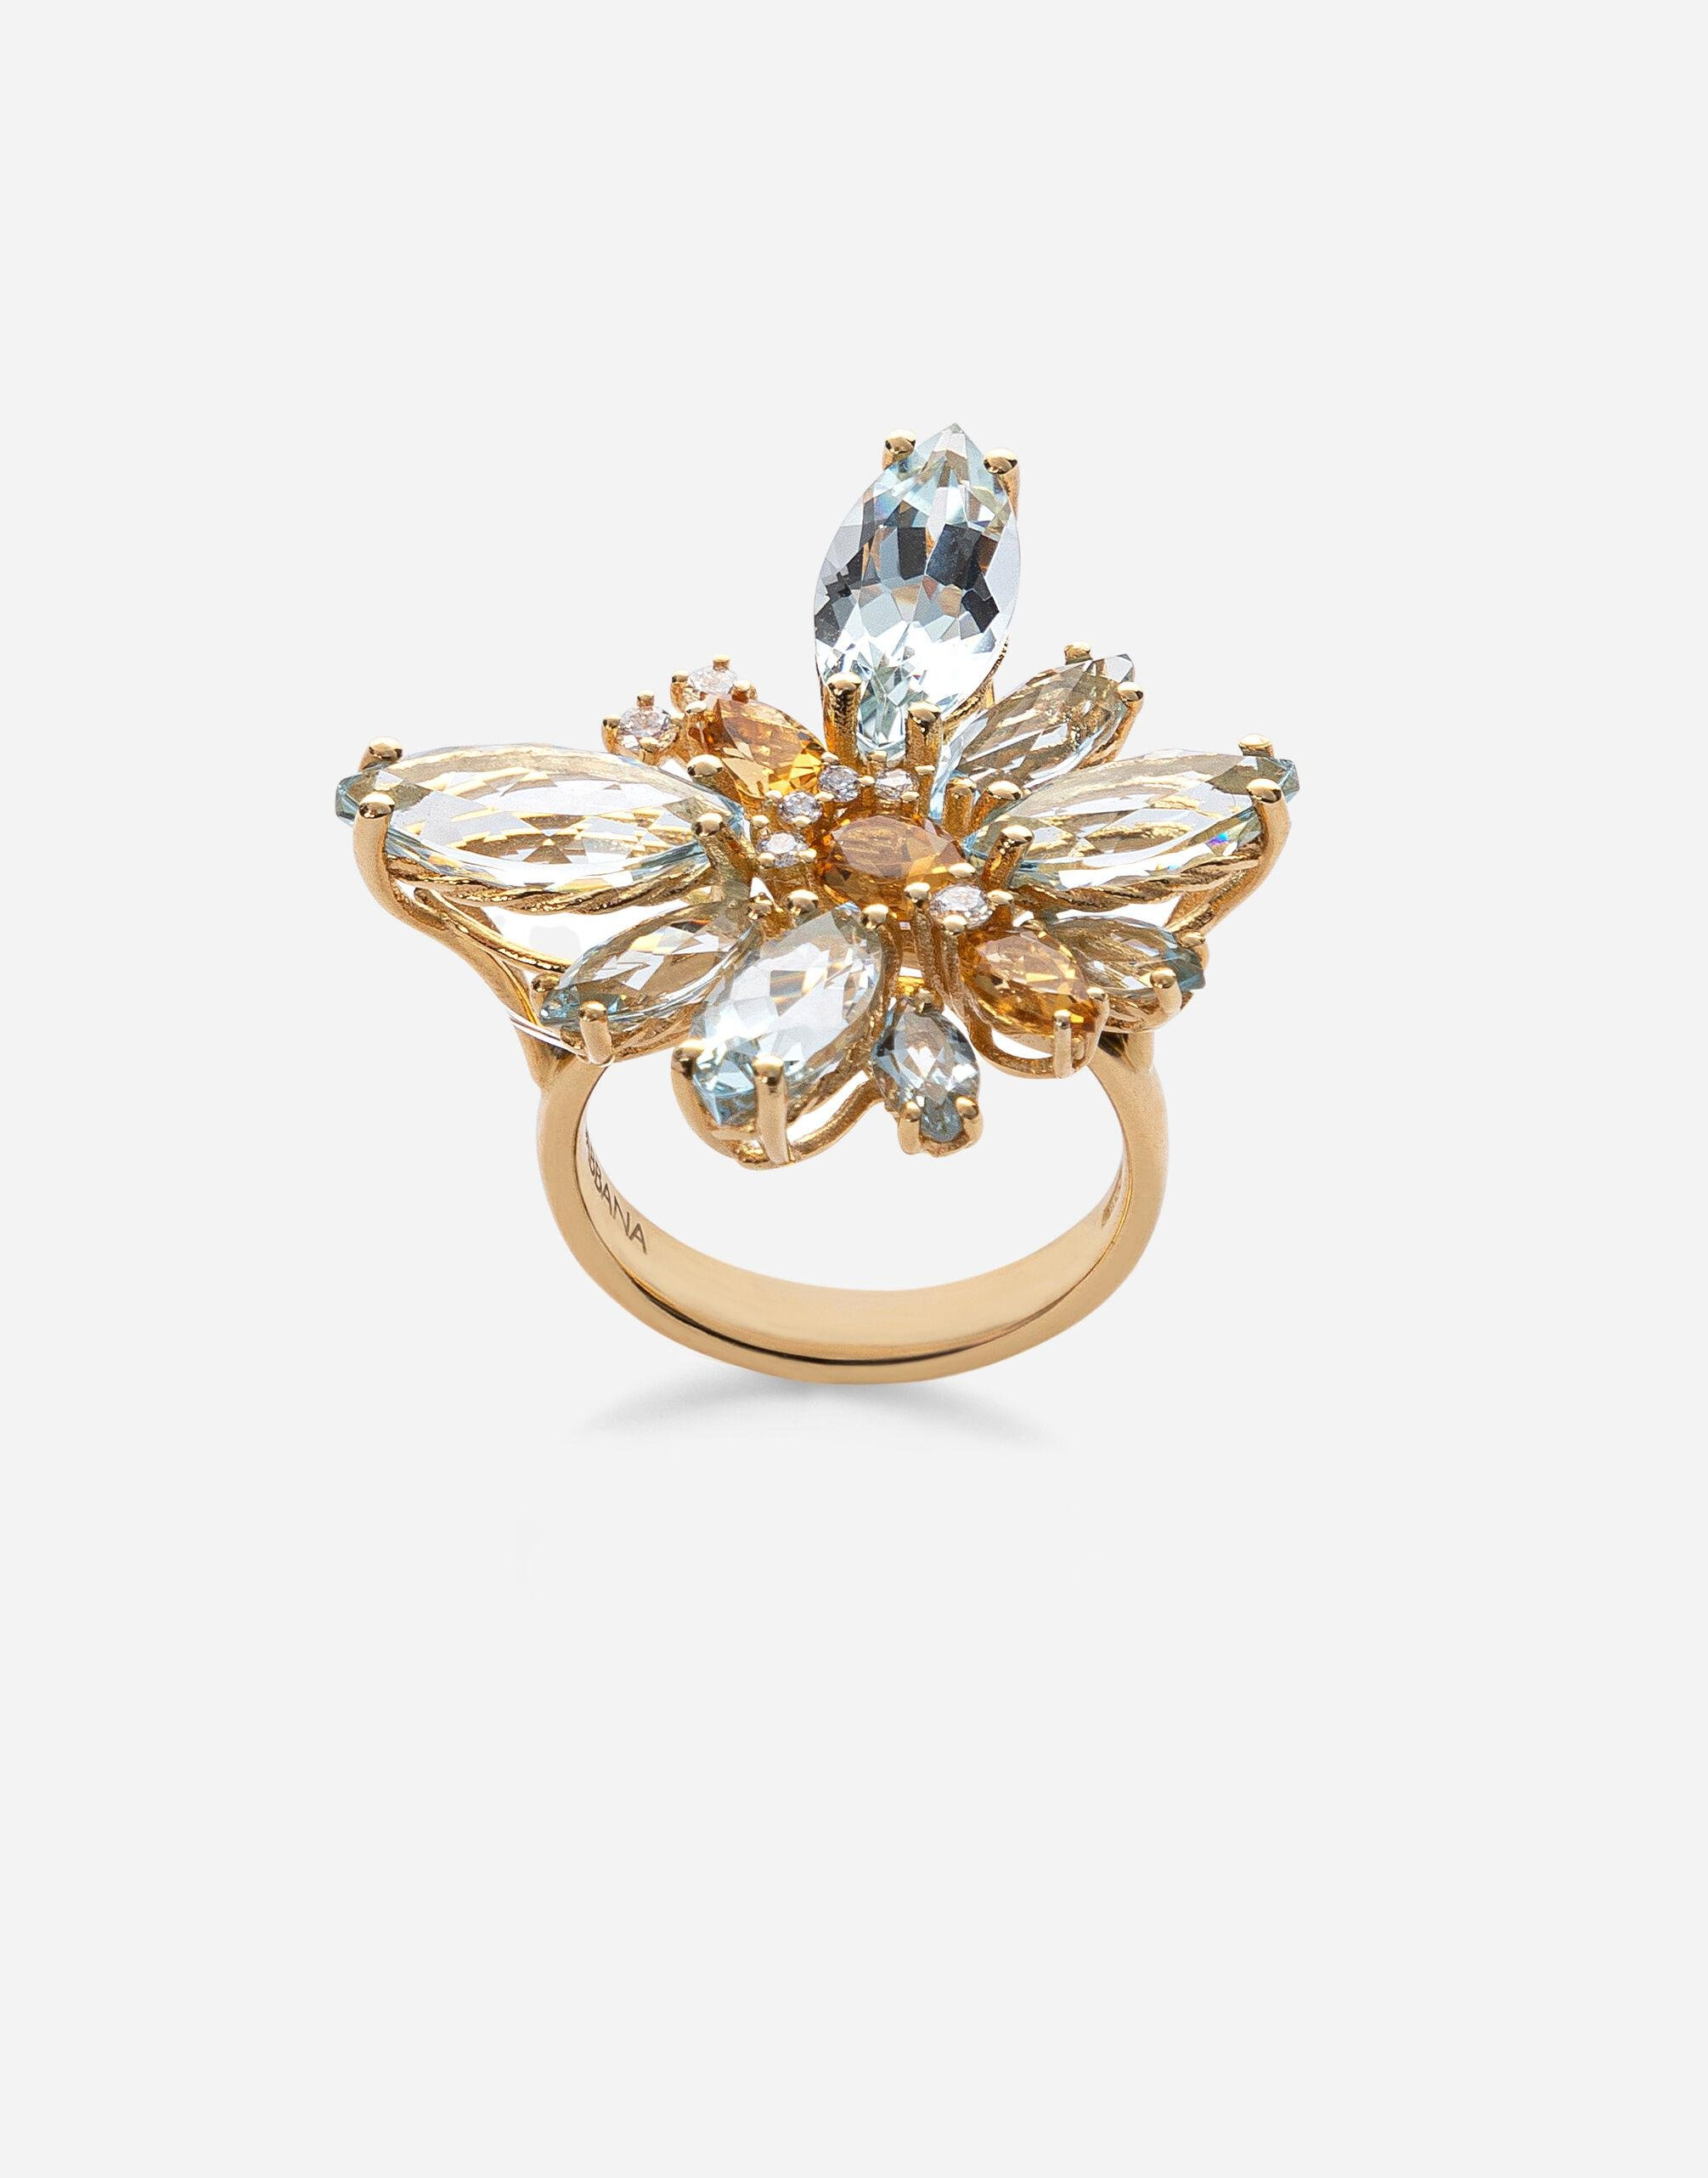 Spring ring in yellow 18kt gold with aquamarine butterfly